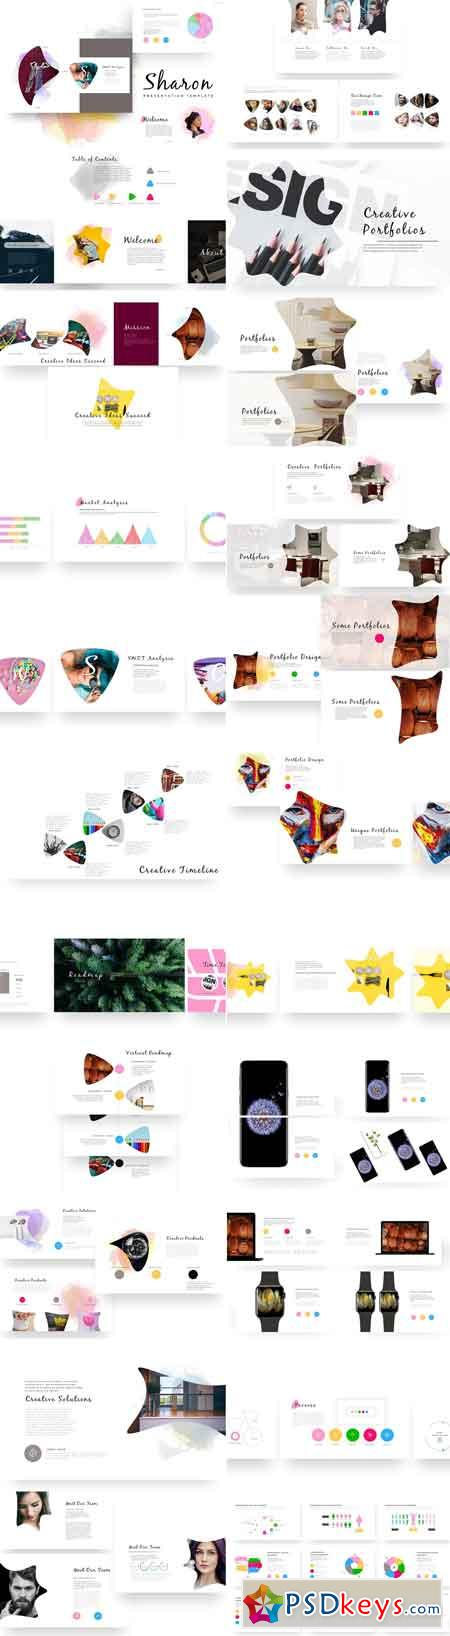 Sharon PowerPoint Template 2506054